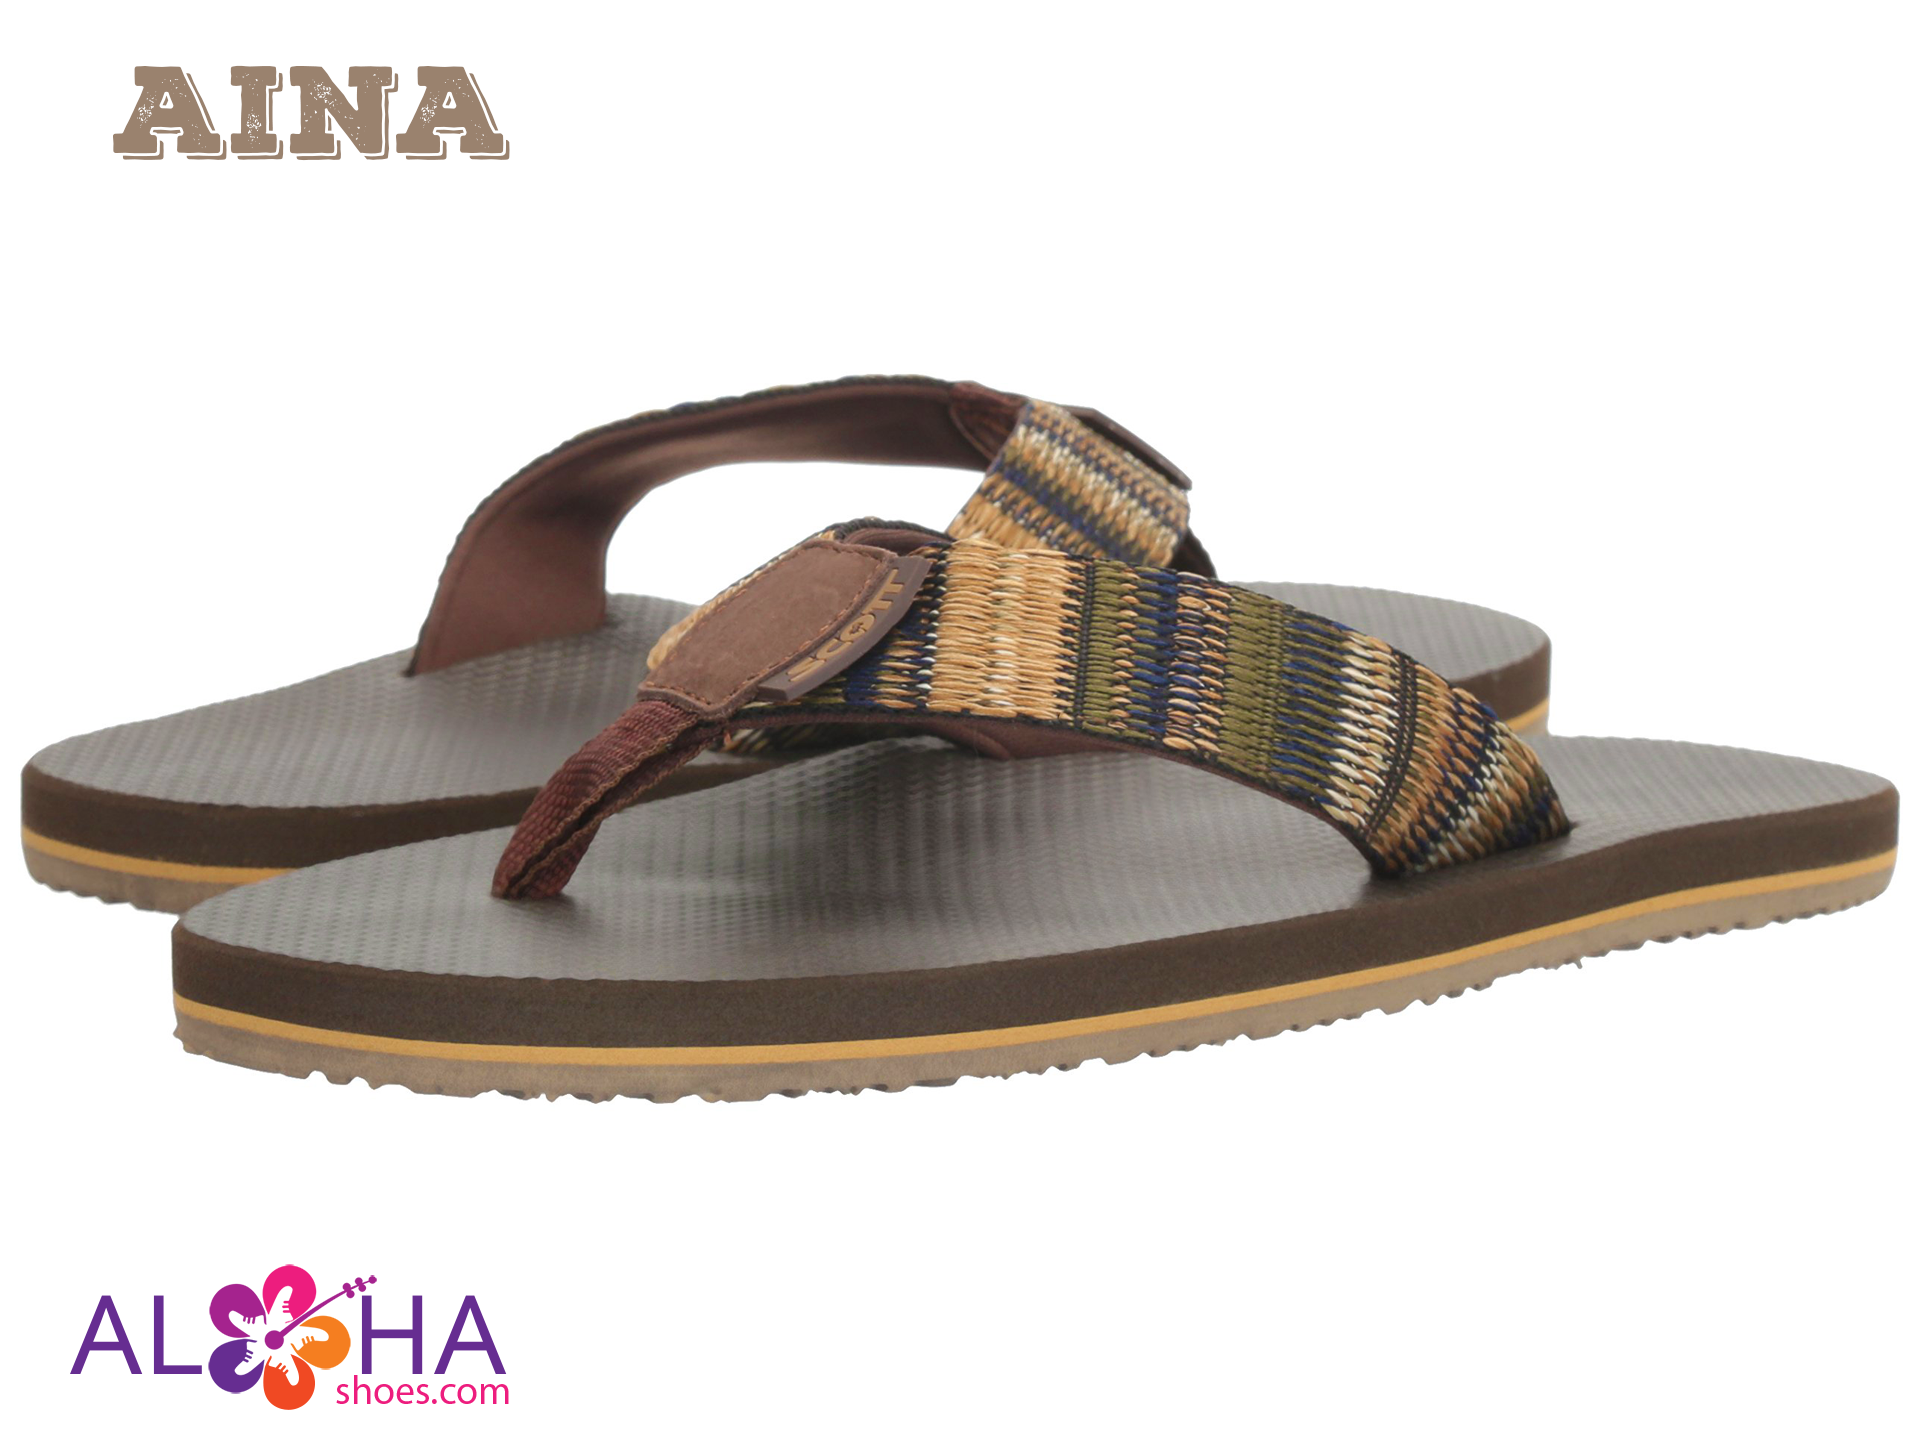 Men's Aina Rubber Slippers With Woven Strap - AlohaShoes.com